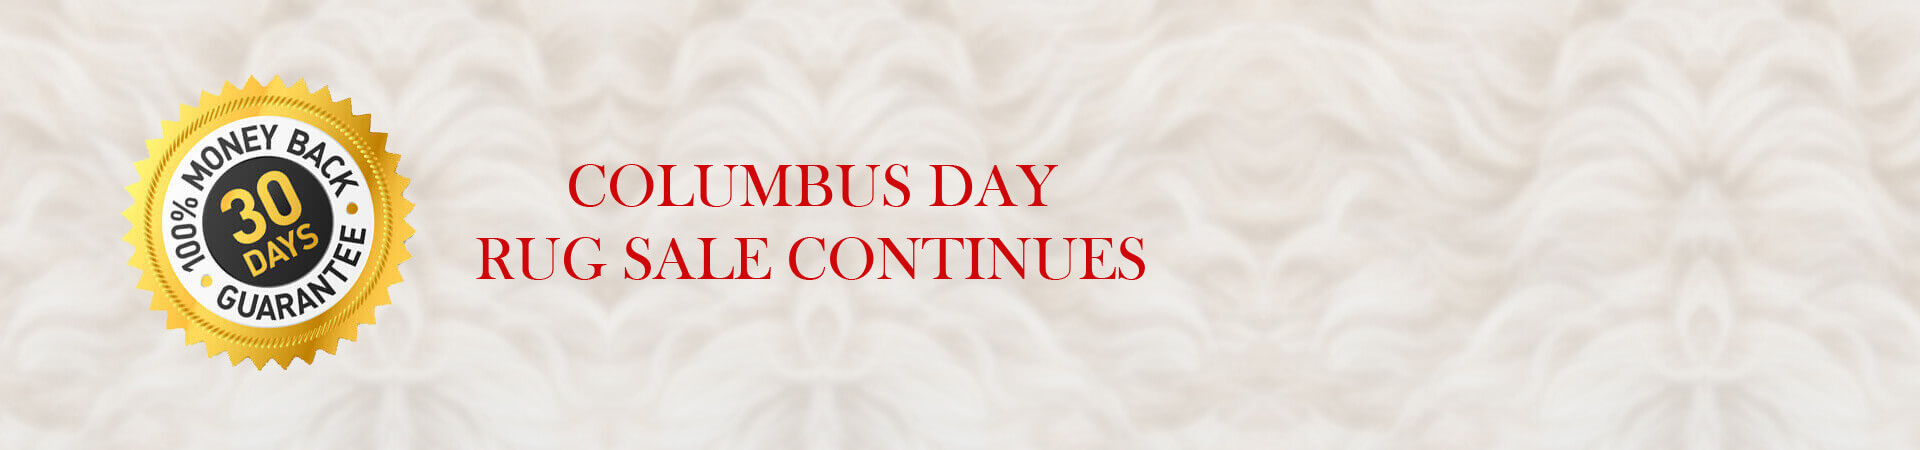 COLUMBUS DAY RUG SALE CONTINUES